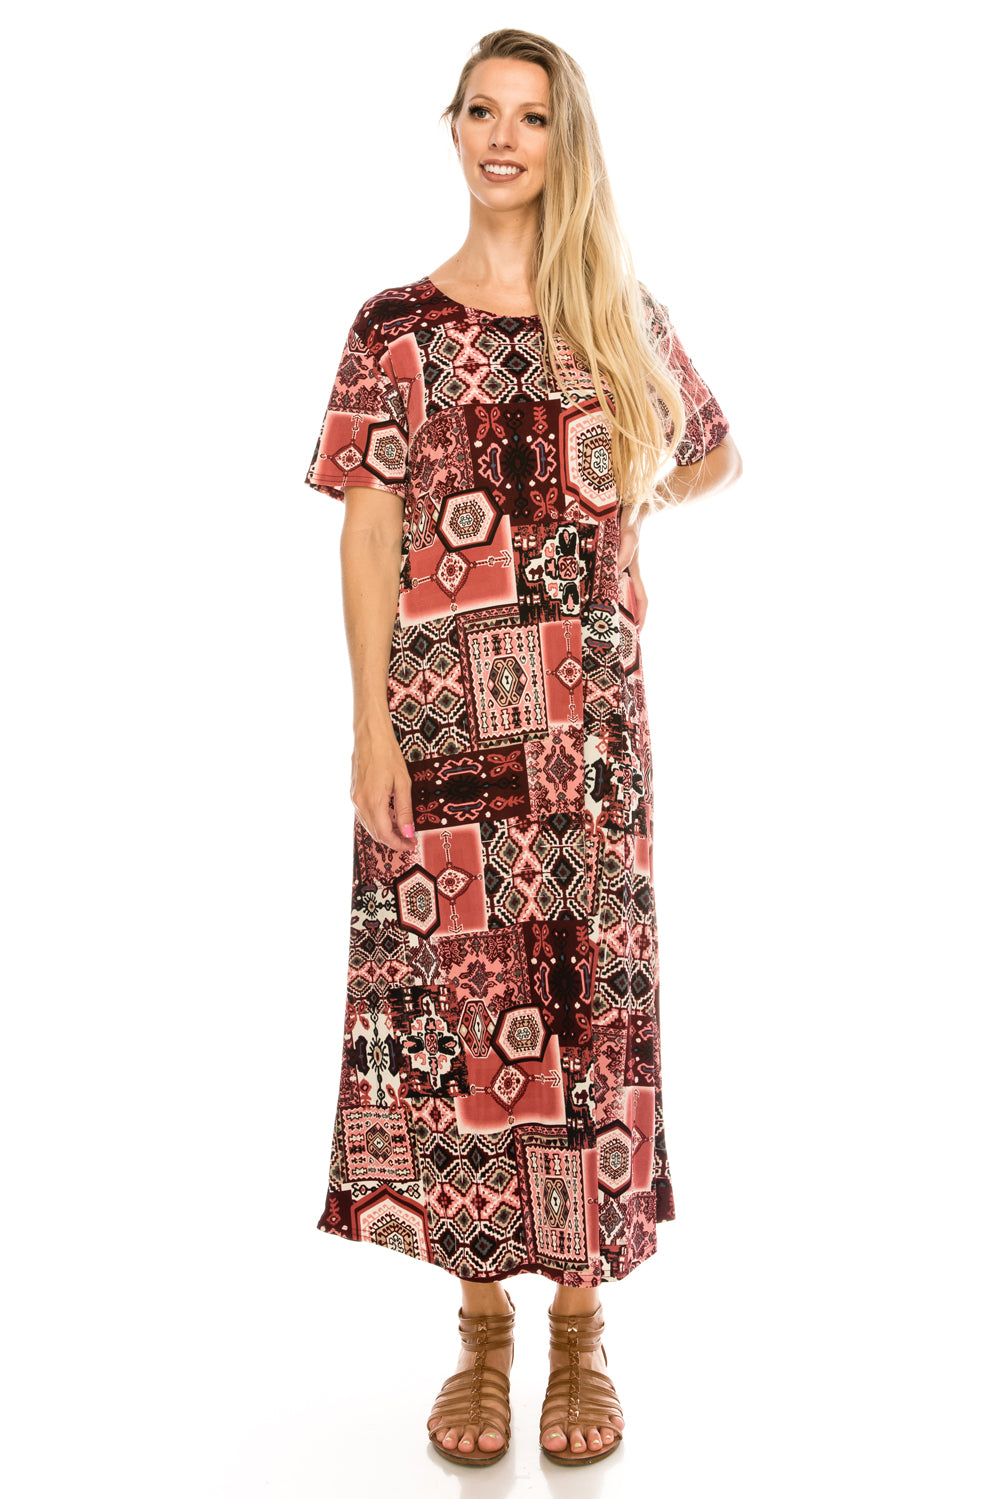 Jostar Women's Stretchy Long Dress Short Sleeve Print, 702BN-SP-W166 - Jostar Online